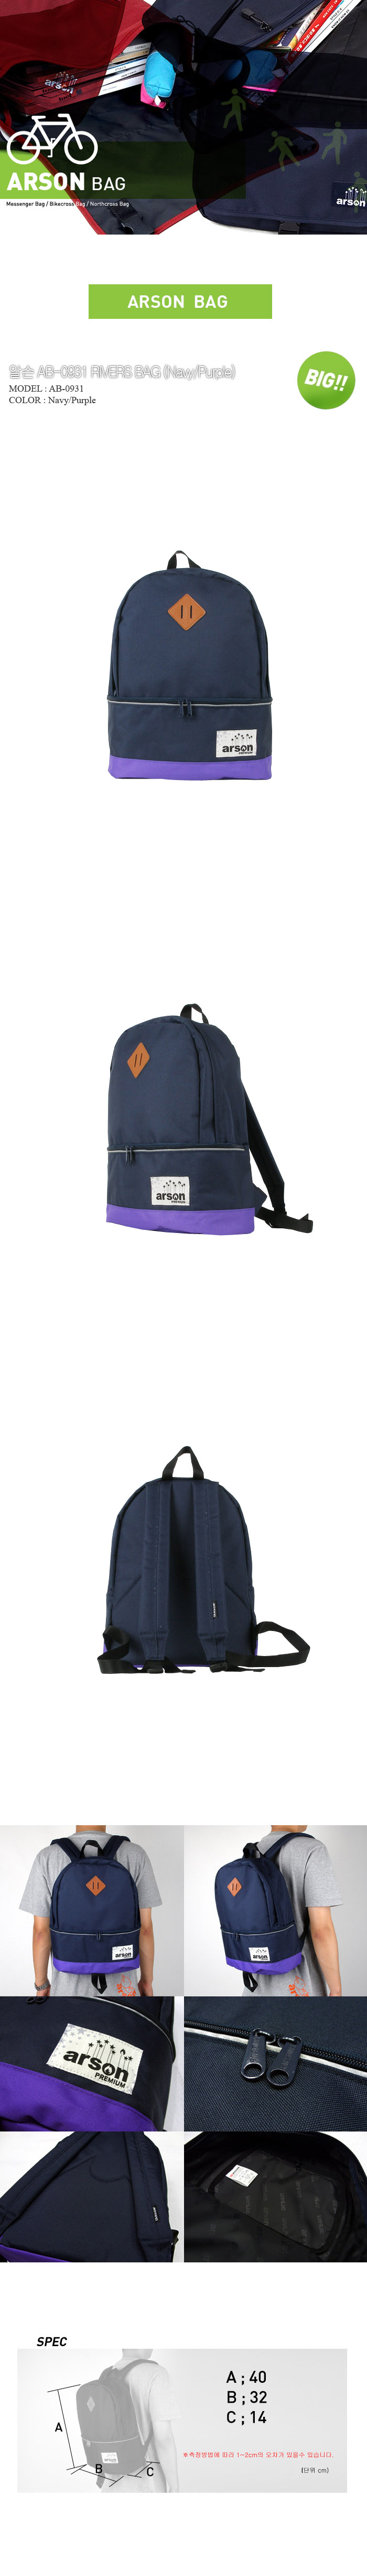 [ ARSON ] AB-0931 (Navy/Purple)/Backpack School Bag